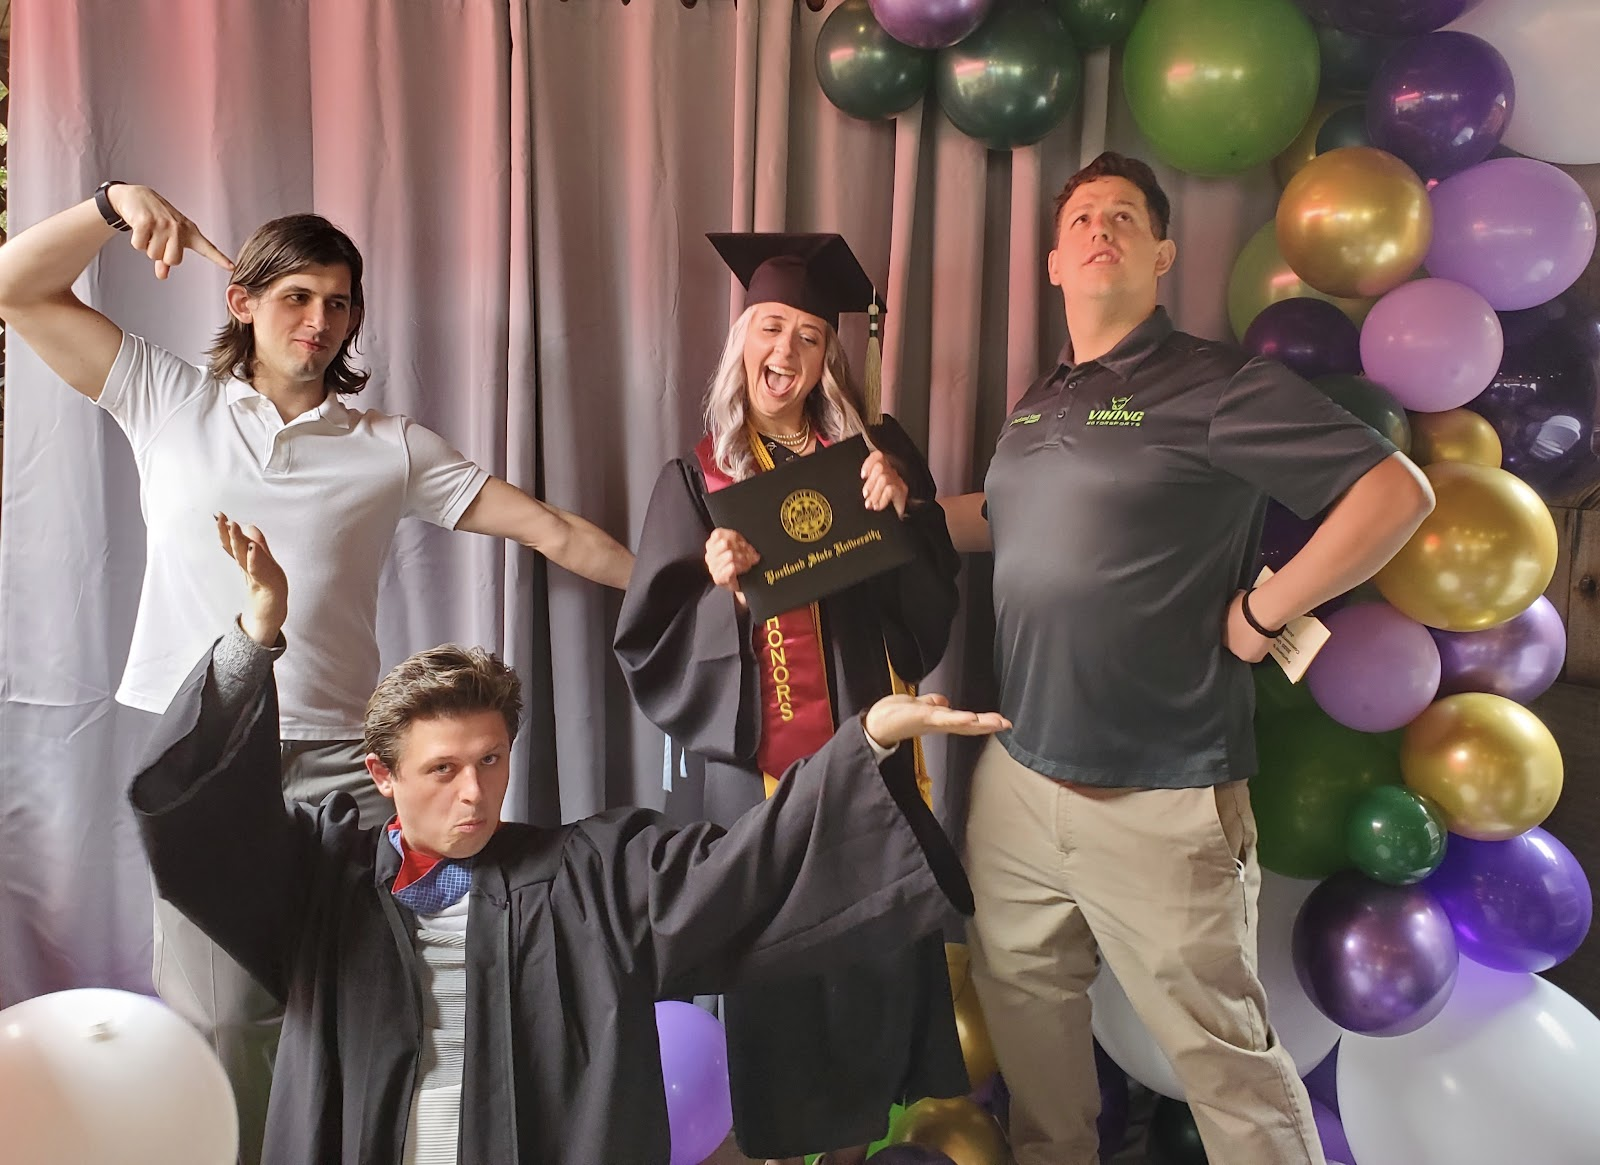 Heather and her three sons celebrating her graduation